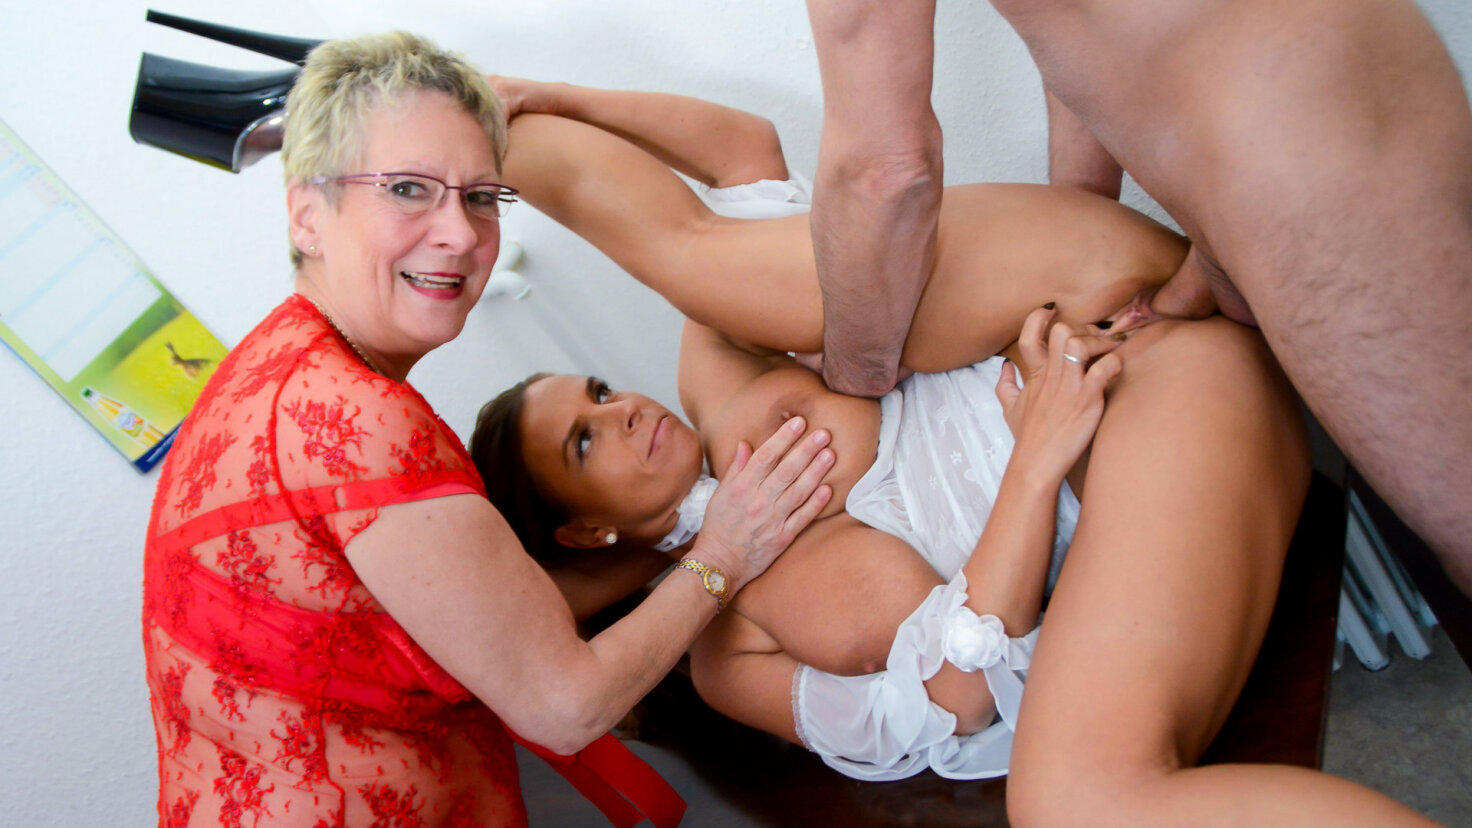 Naughty German amateur grannies get dirty in hardcore FFM threesome